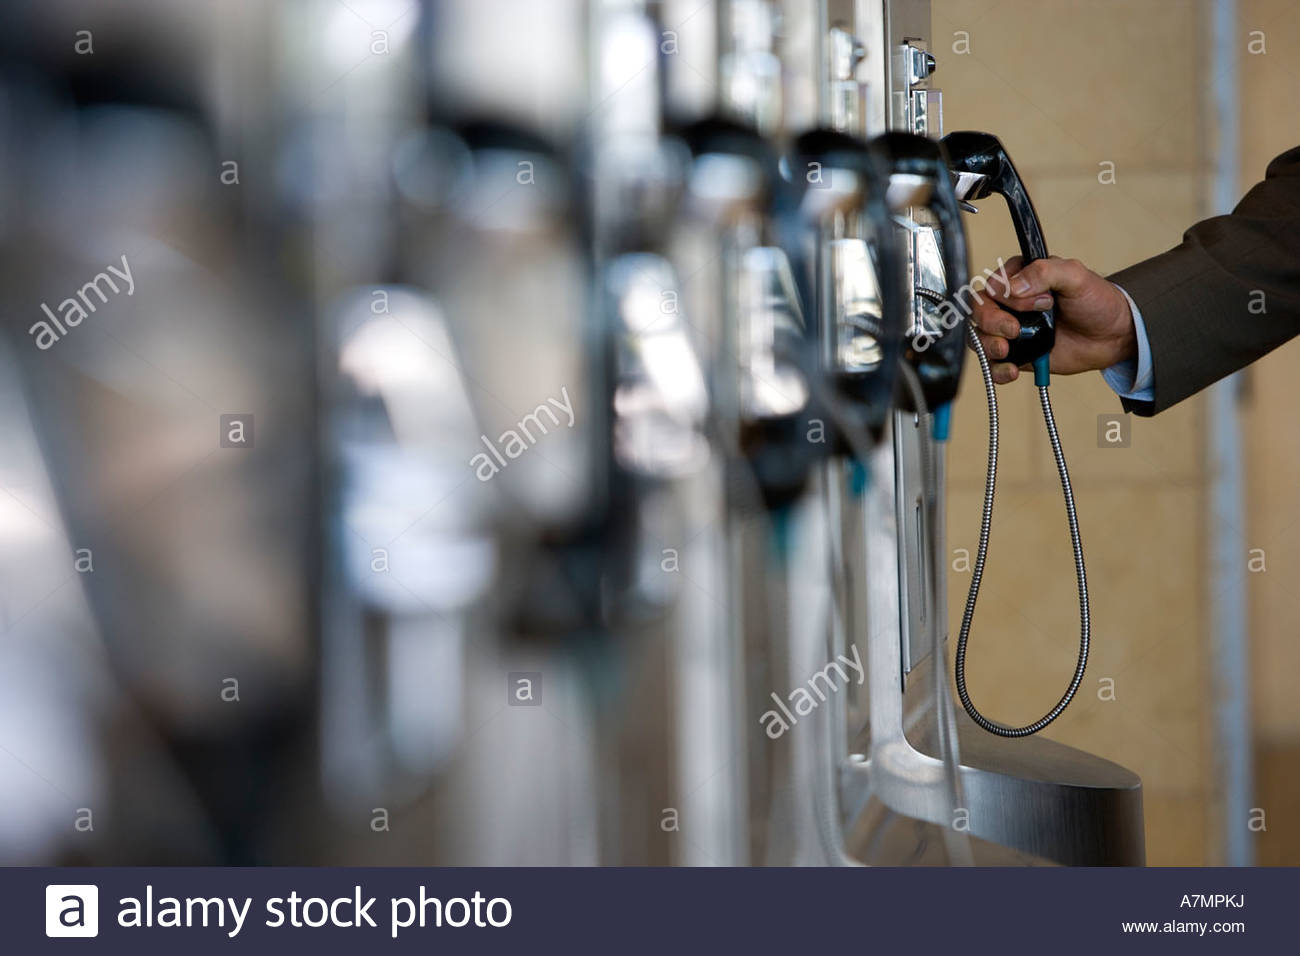 Businessman using public payphone side view focus on background - Stock Image